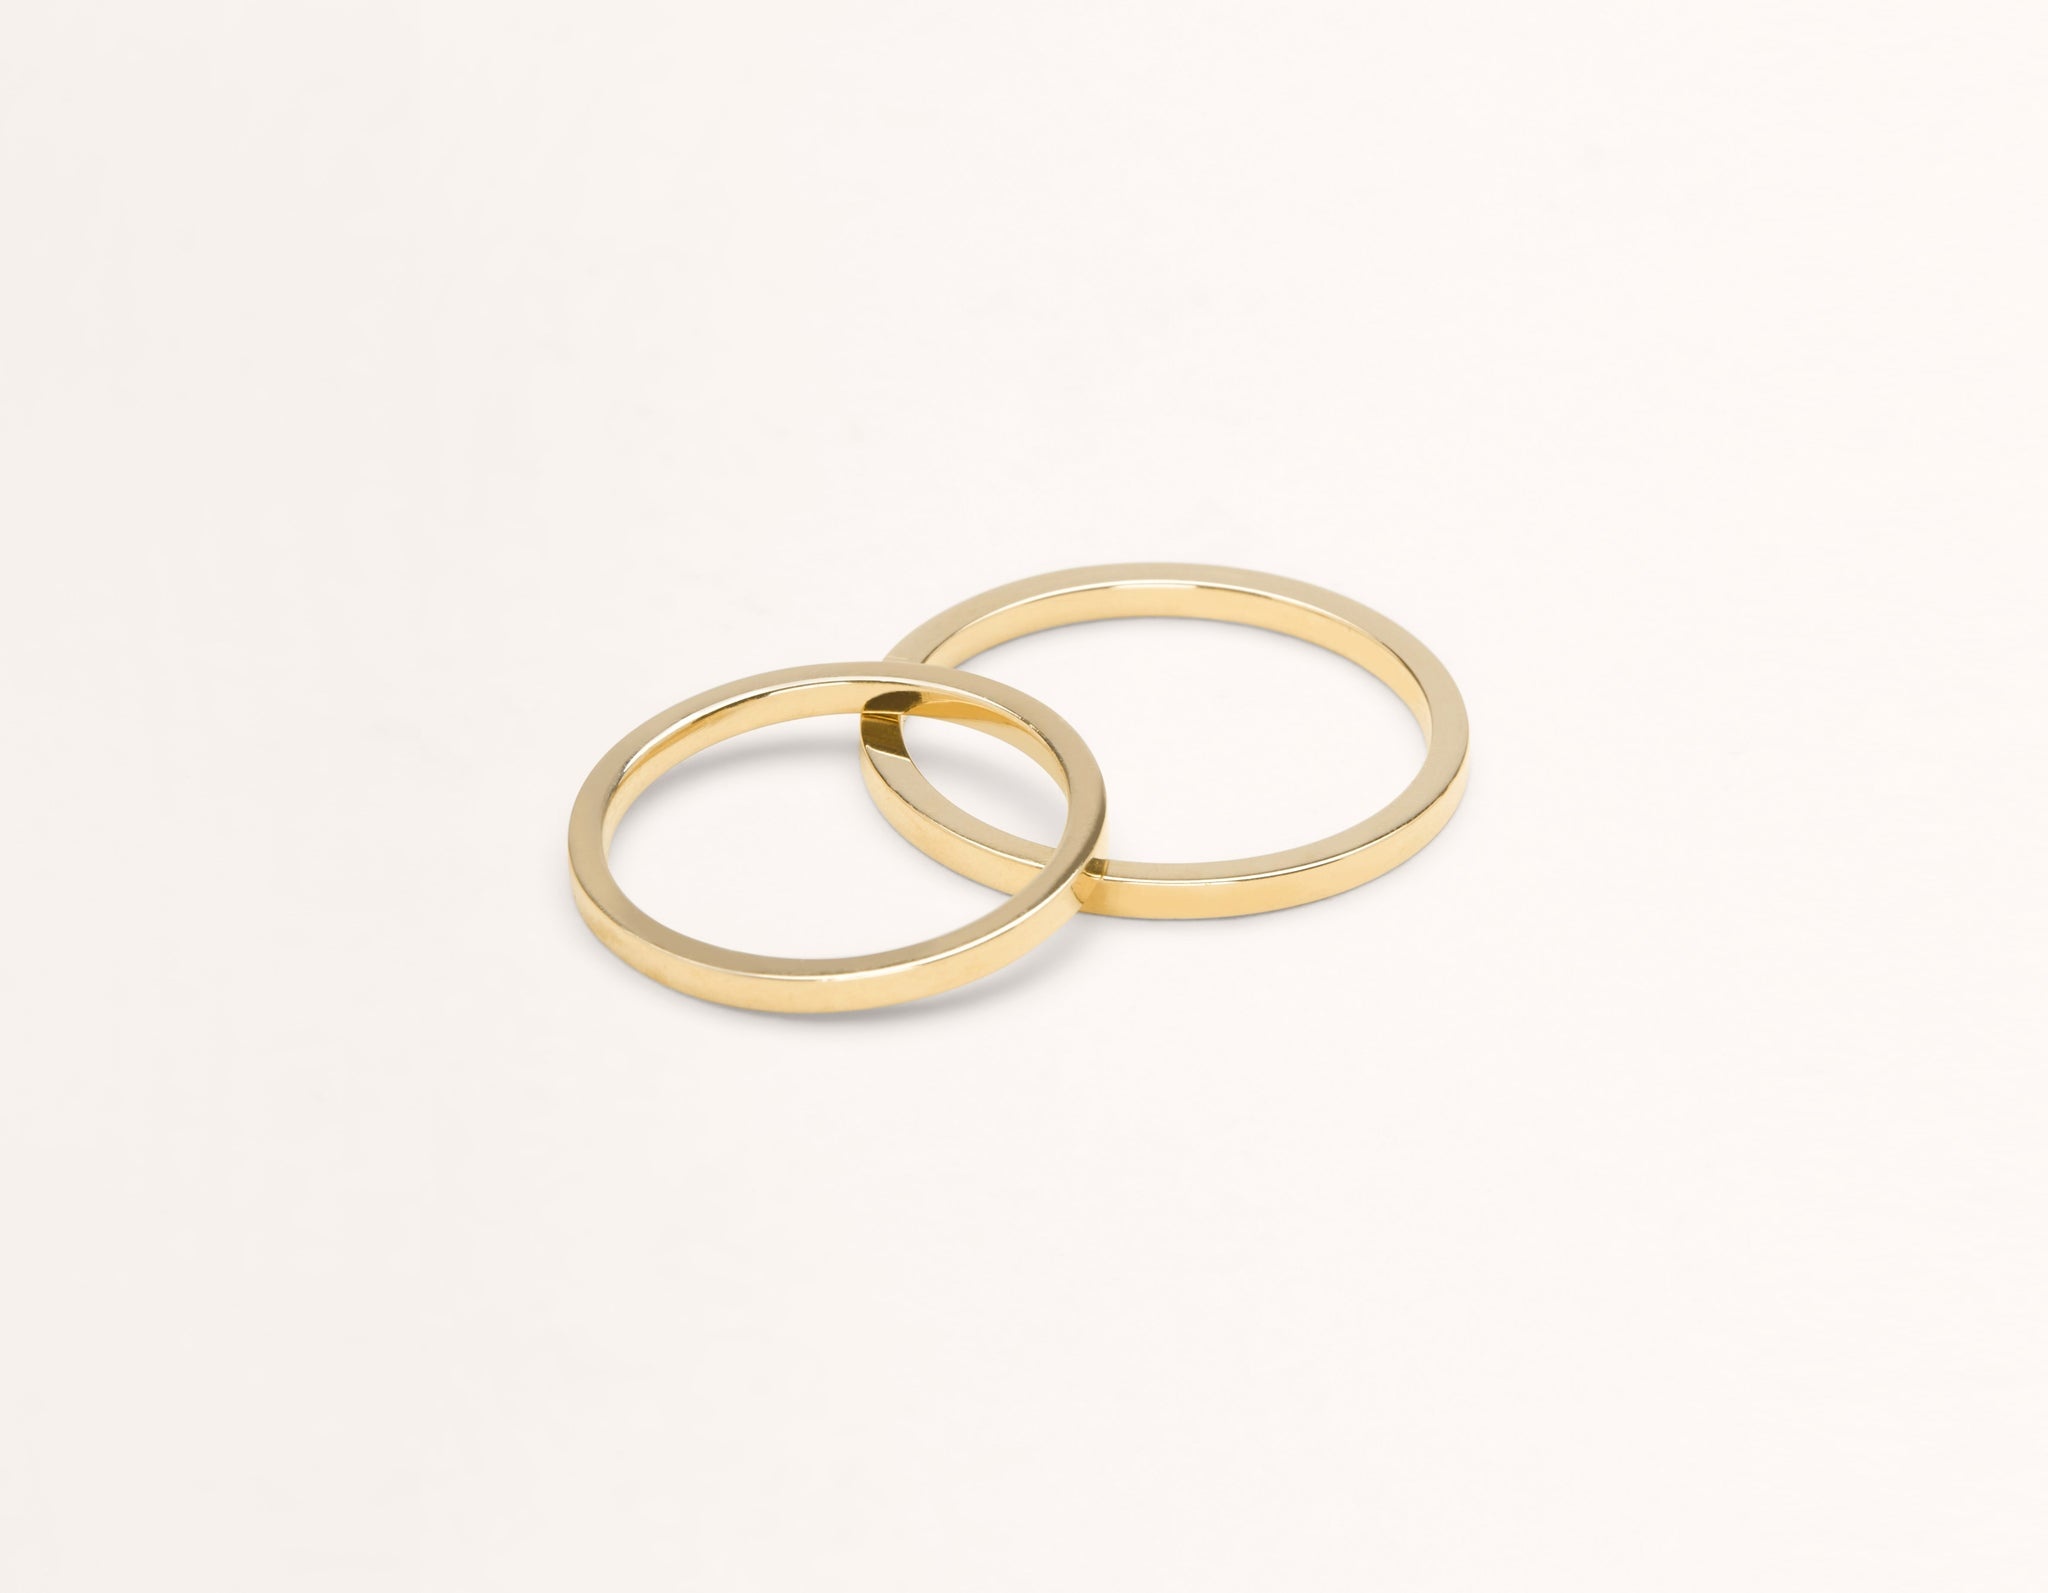 Vrai & Oro 18k solid yellow gold Wedding Band 1.5 Flat unisex simple classic band